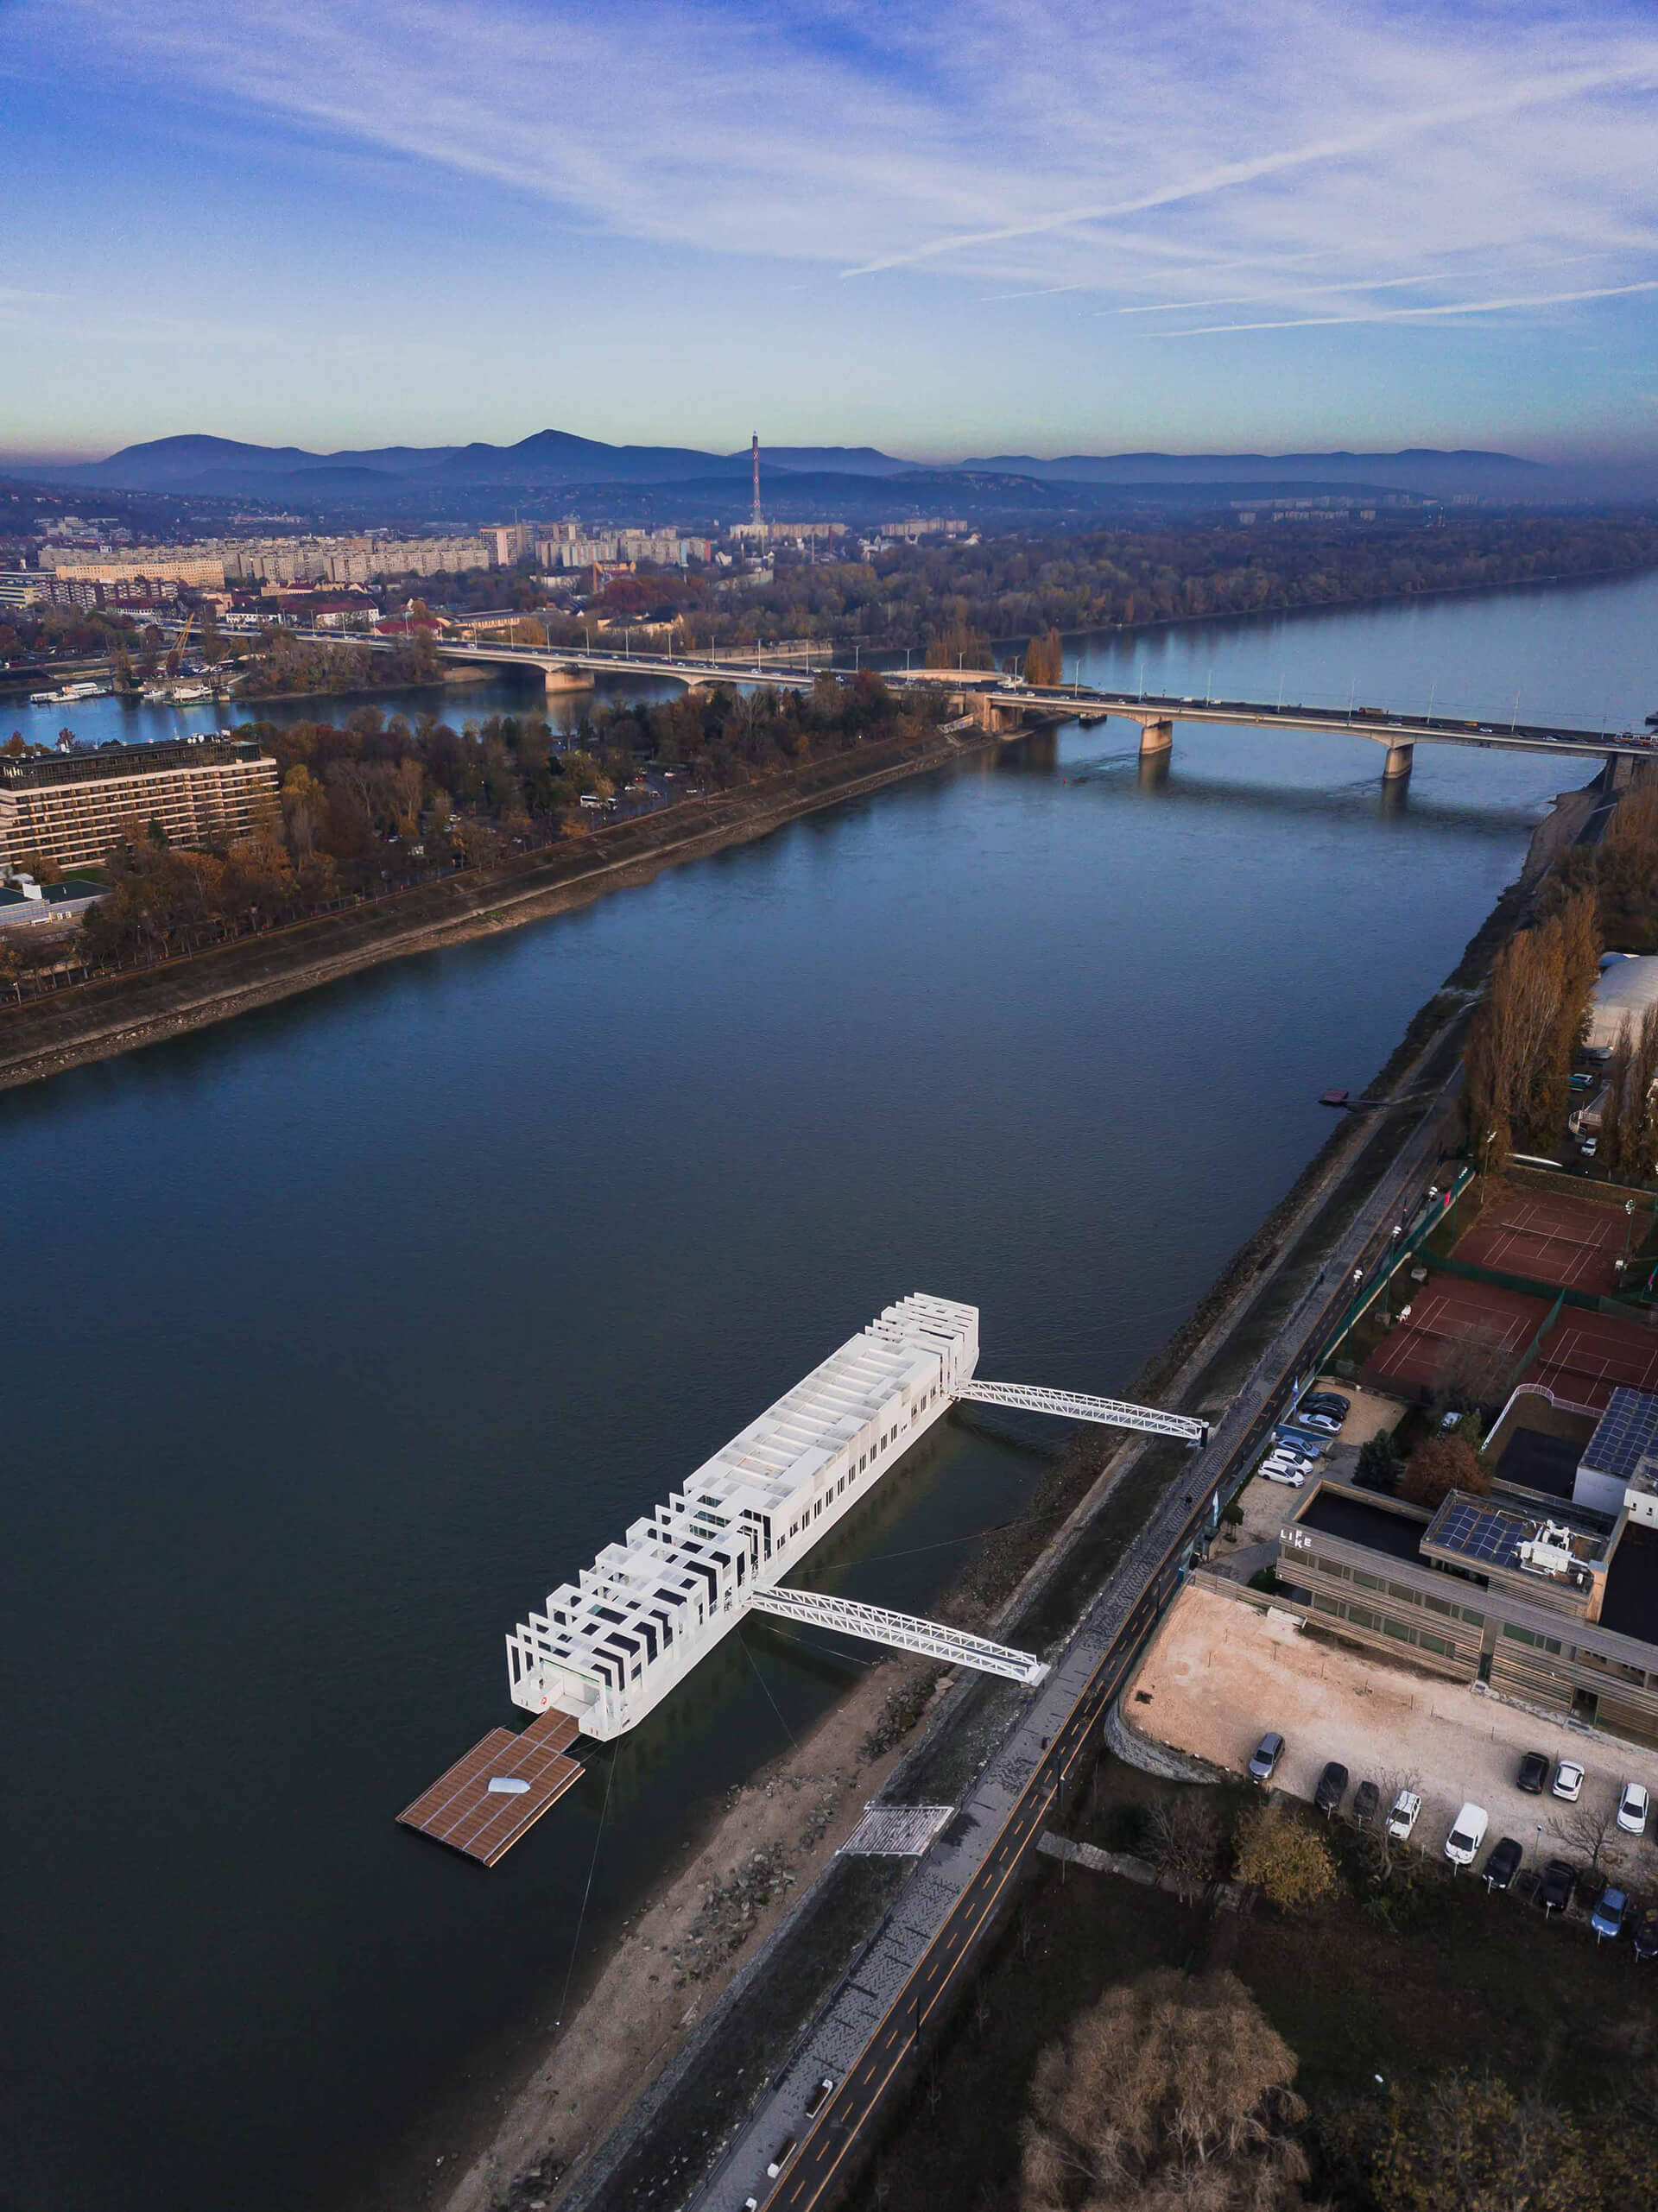 Hungarian Canoe Federation initiated this to build a headquarter on the Moscow Promenade | The Ark | Napur Architecture | STIRworld